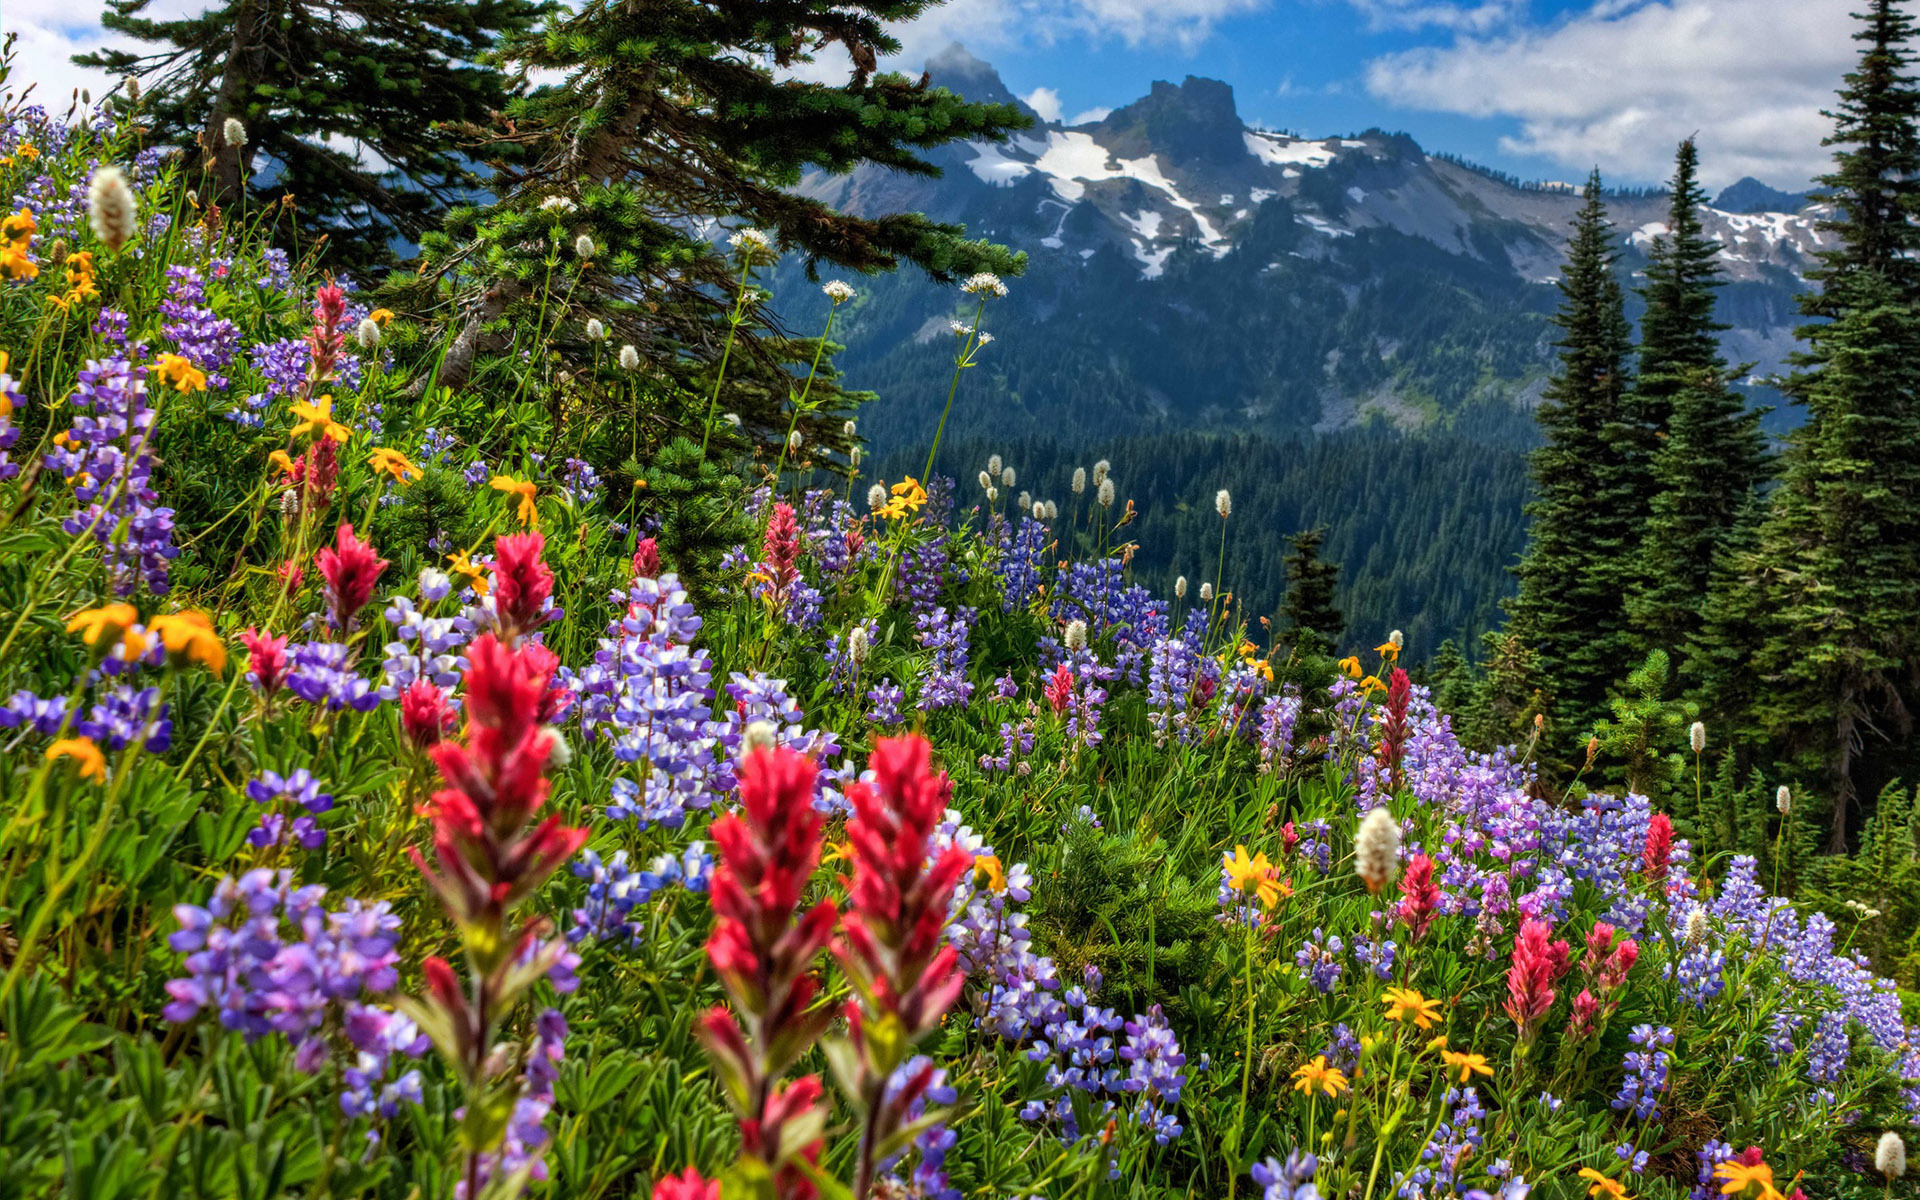 Flowers In The Mountains Wallpapers High Quality